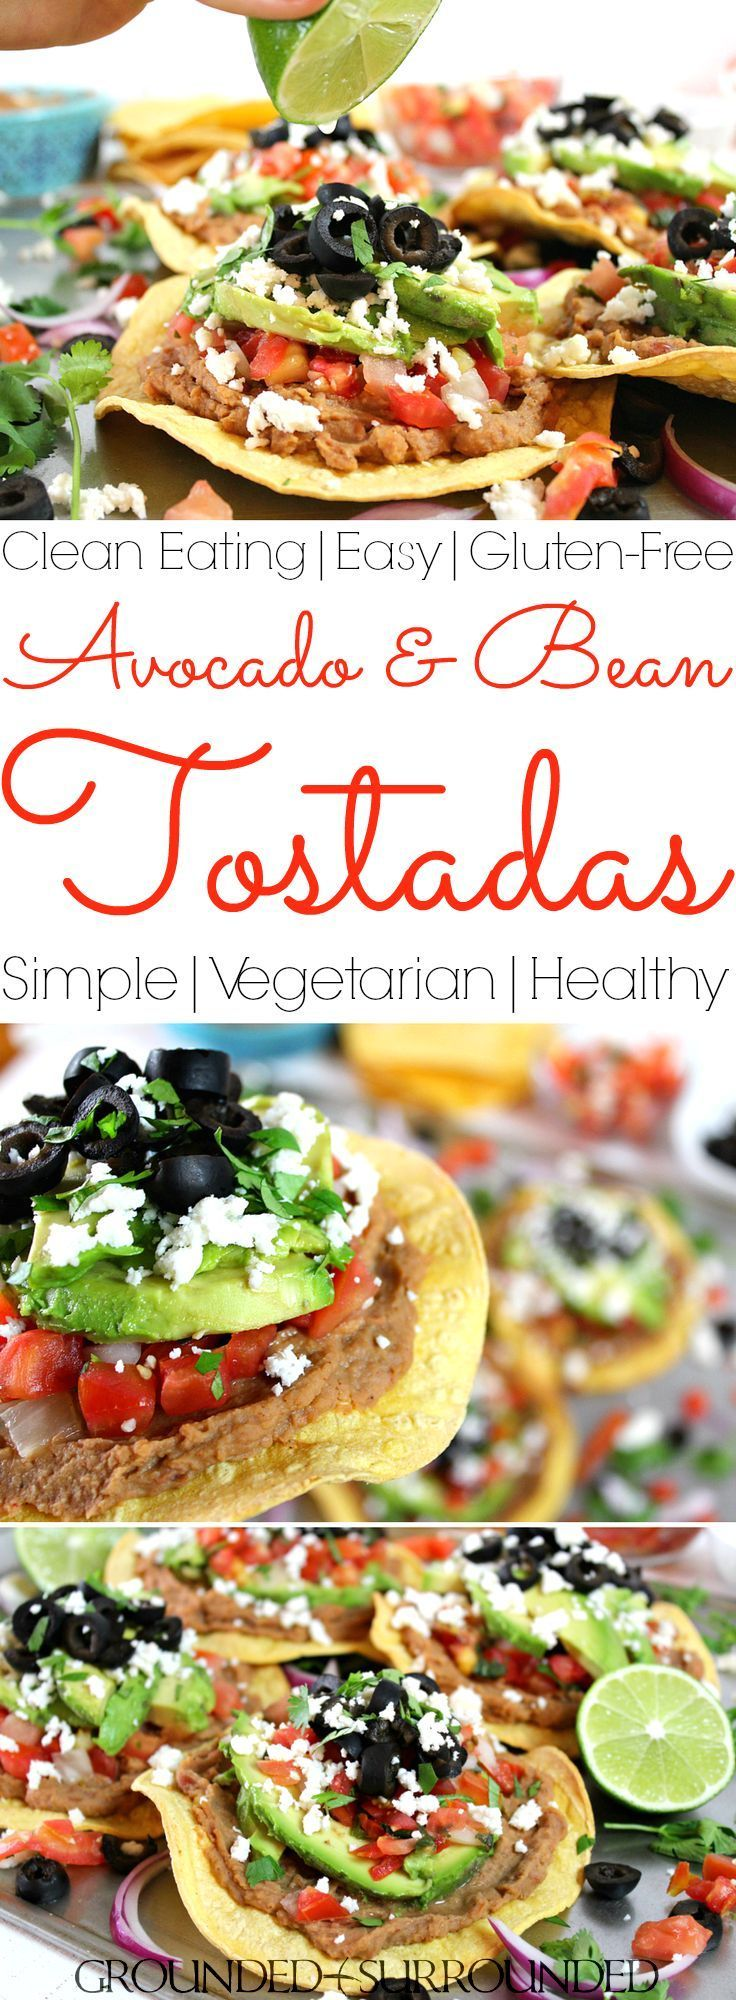 The BEST Vegetarian Tostadas | These healthy tostadas packed with whole food ingredients like avocado, pico de gallo, refried beans and Mexican cheese are the perfect Meatless Monday meal option. Dinn (21 Day Fix Recipes Sides)